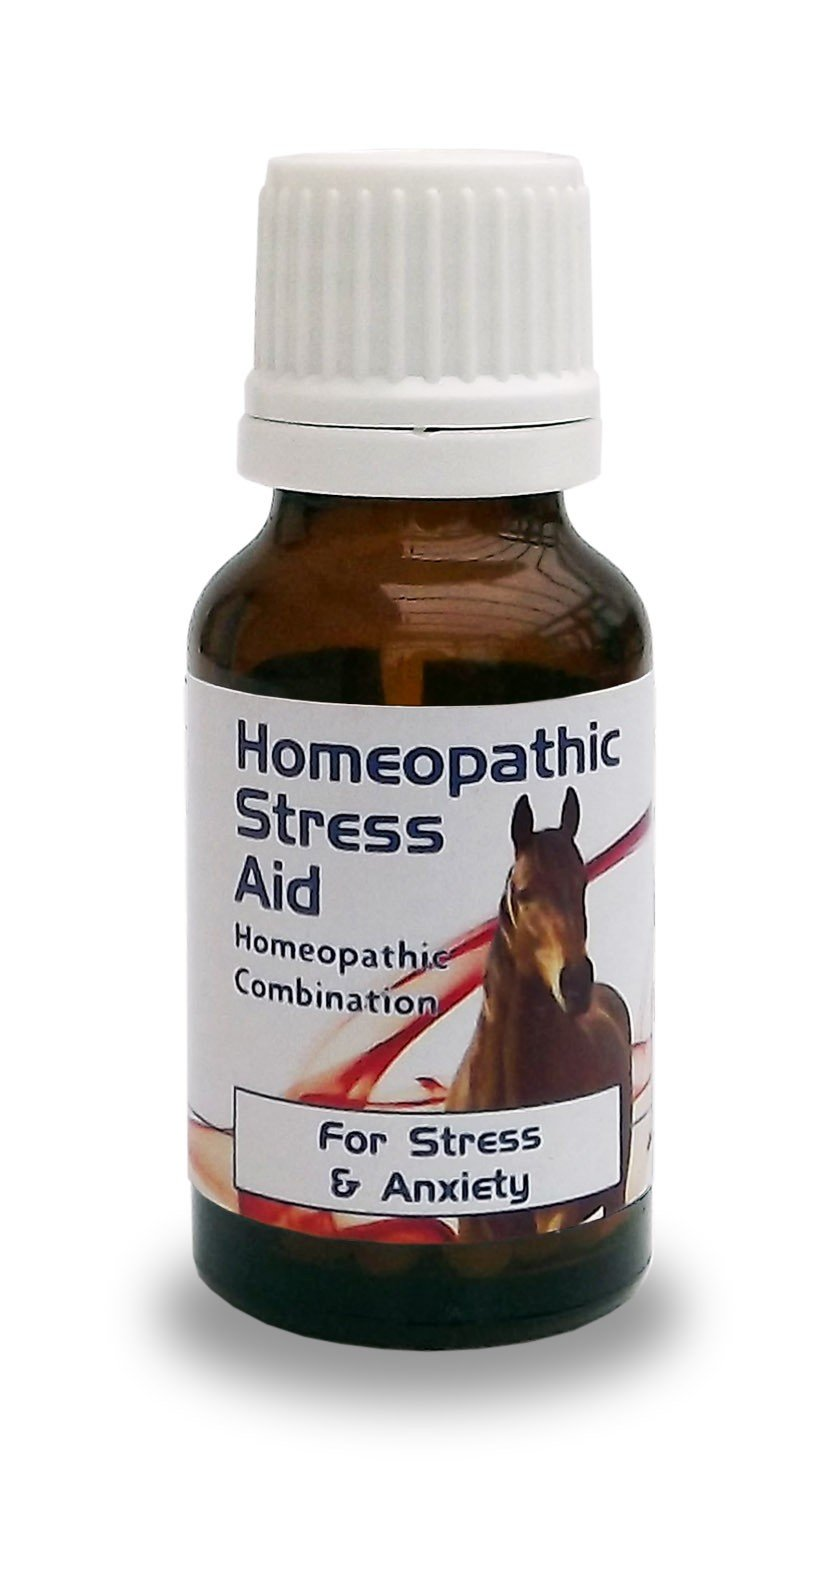 Equi-Homoeopathic Stress Aid 10g